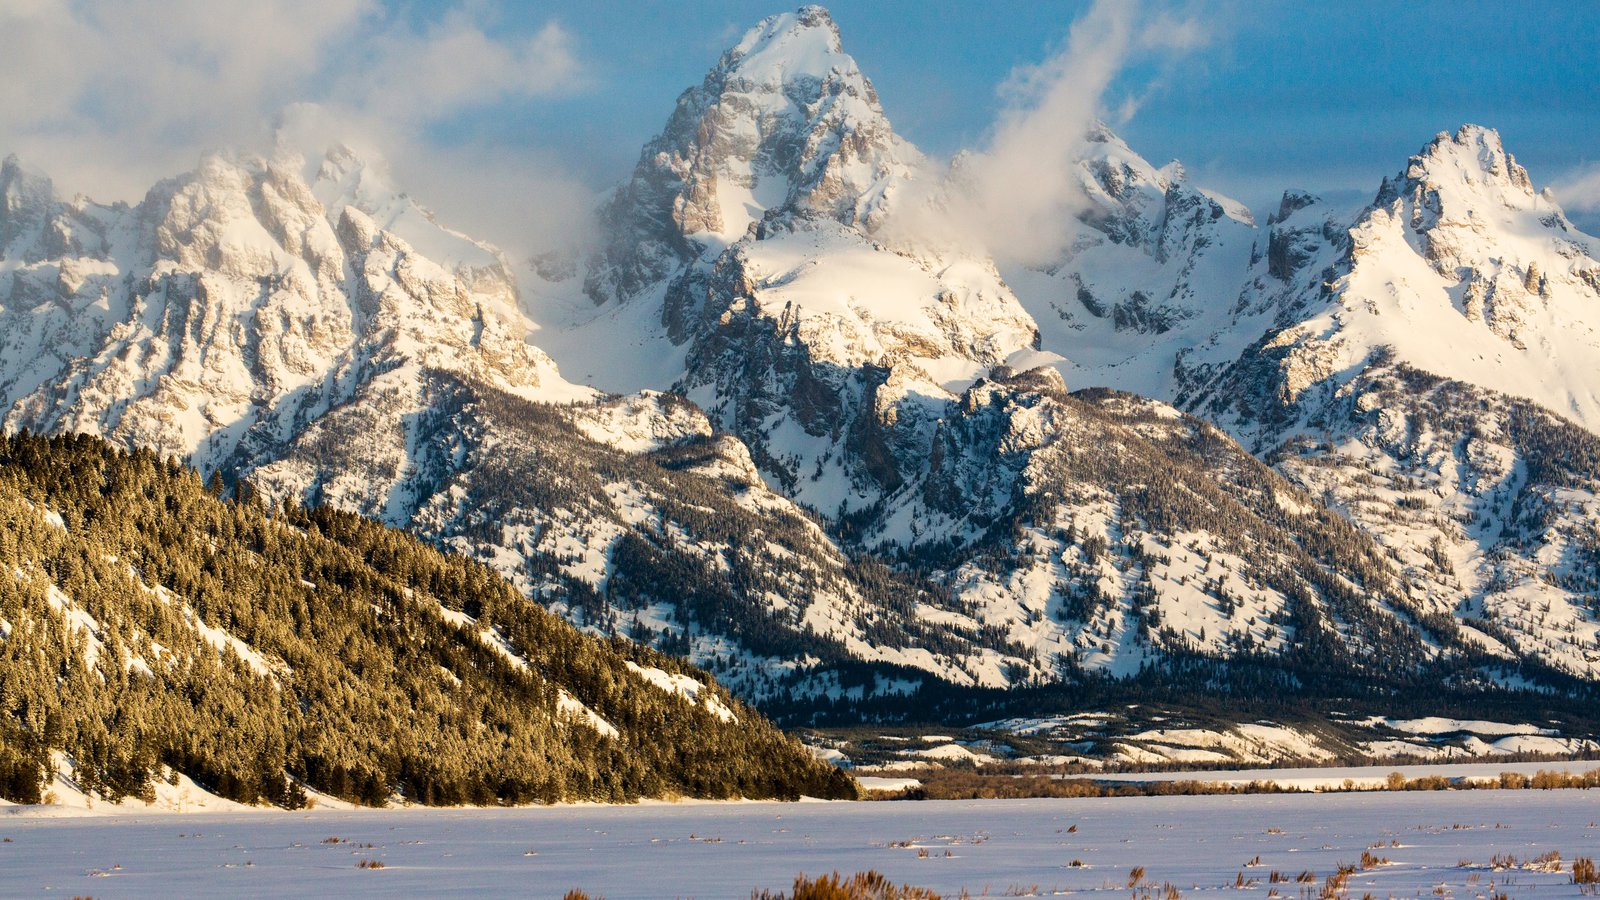 Jackson Hole Mountain Resort que inclui montanhas e neve